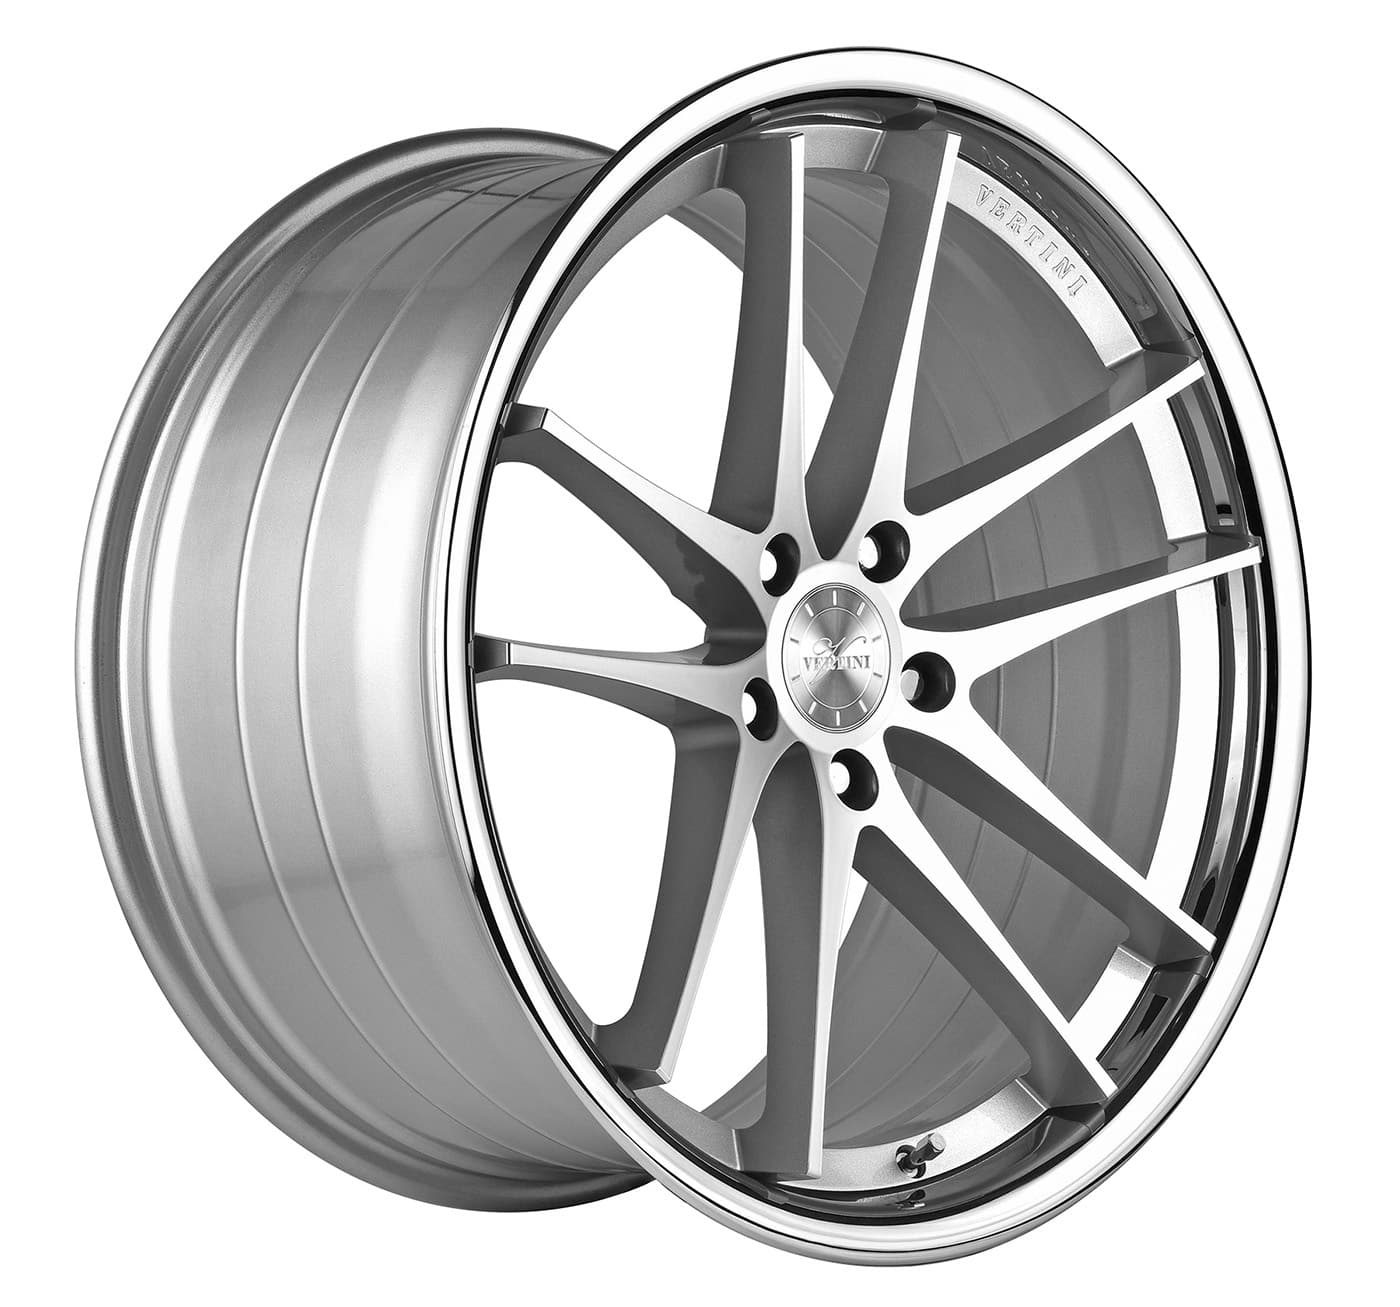 vertini-rf1.5-rotory-forged-concave-mesh-lightweight-wheels-brushed-silver-polished-lip.jpg